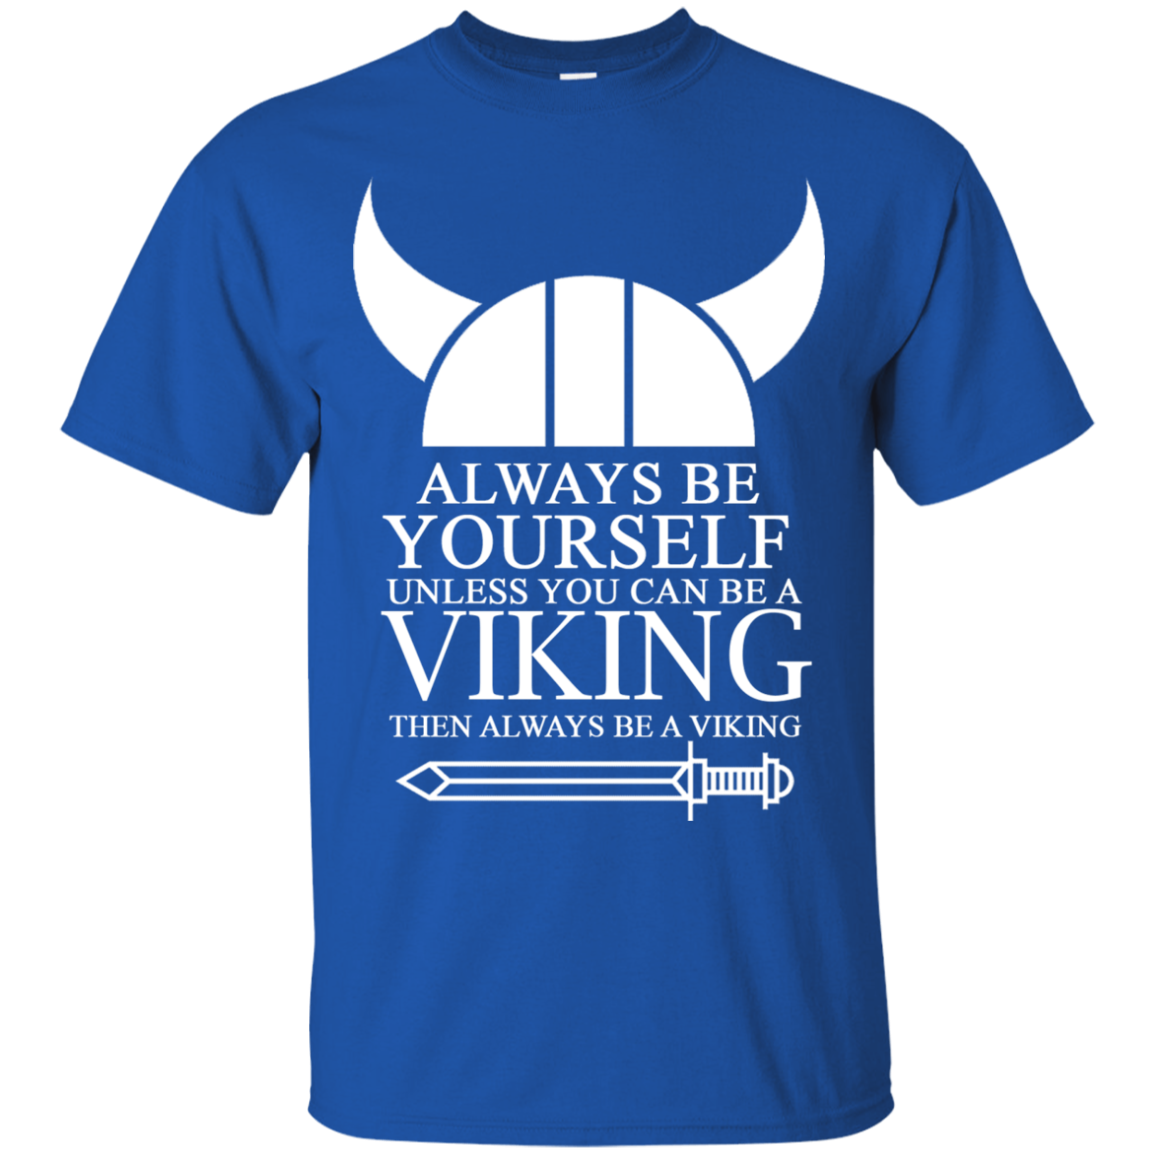 ALWAYS BE YOURSELF UNLESS YOU CAN BE A VIKING THEN ALWAYS BE A V T-Shirt & Hoodie - The Sun Cat